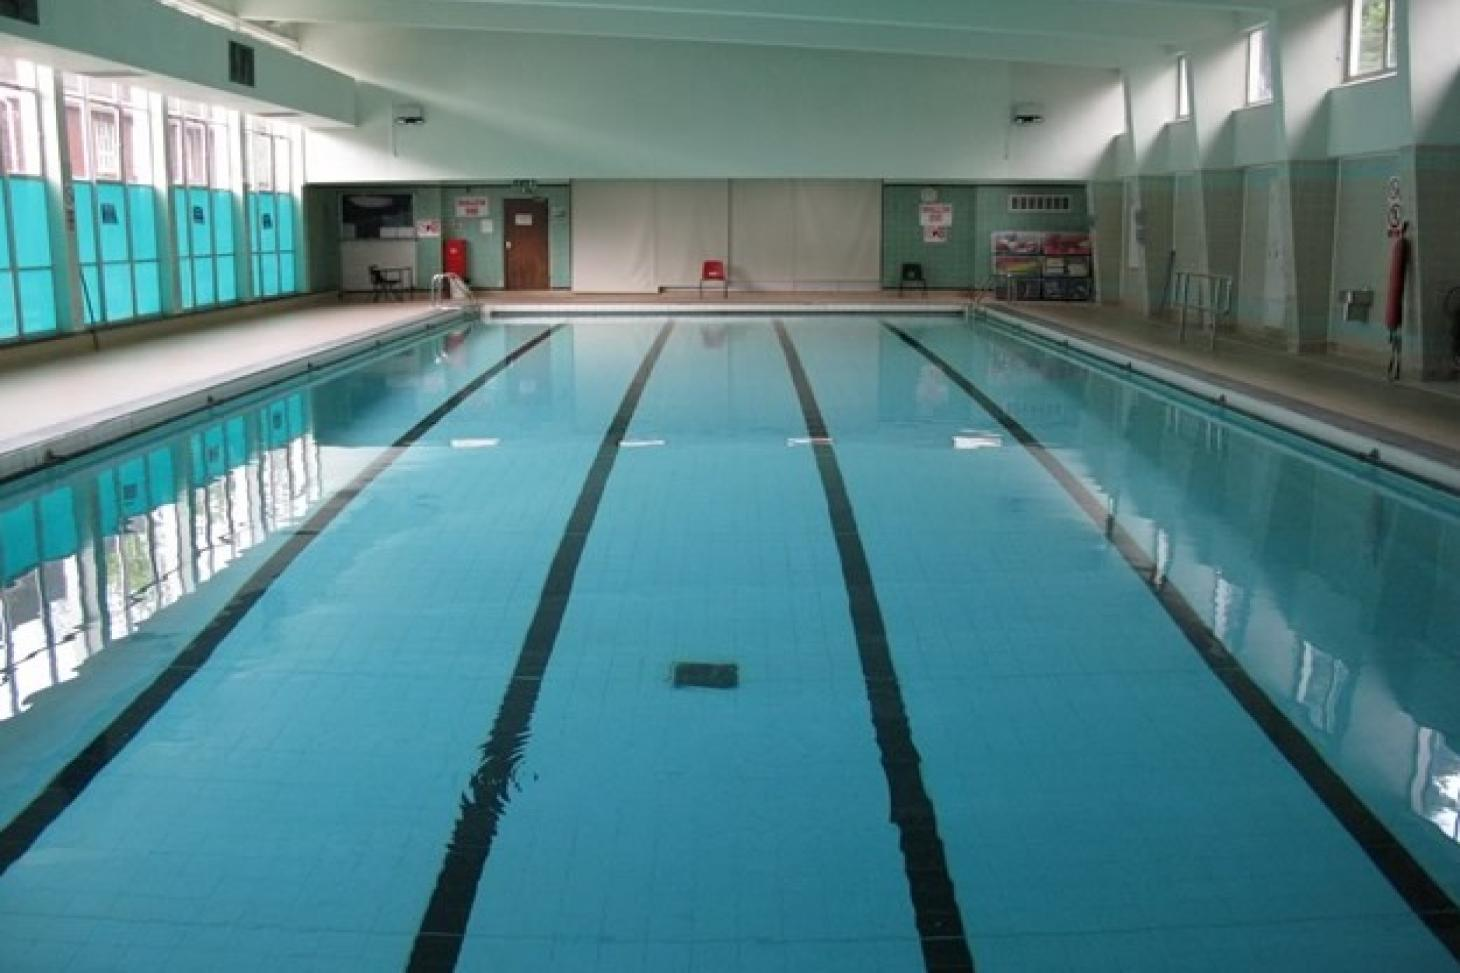 Denbigh High School Indoor swimming pool